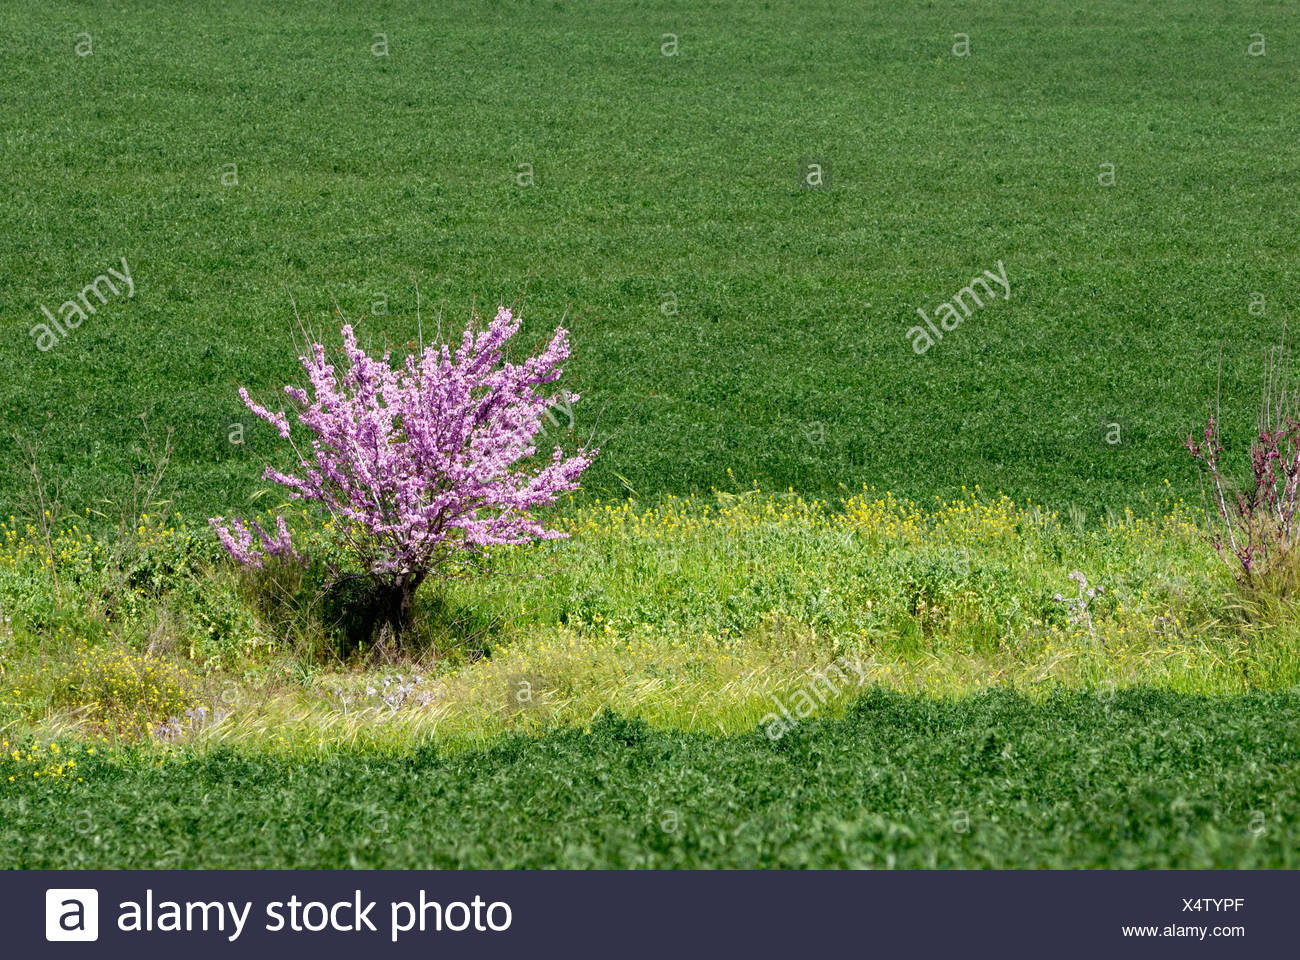 Israel, Negev, purple blossoms on a lone tree in a wheat field Stock Photo